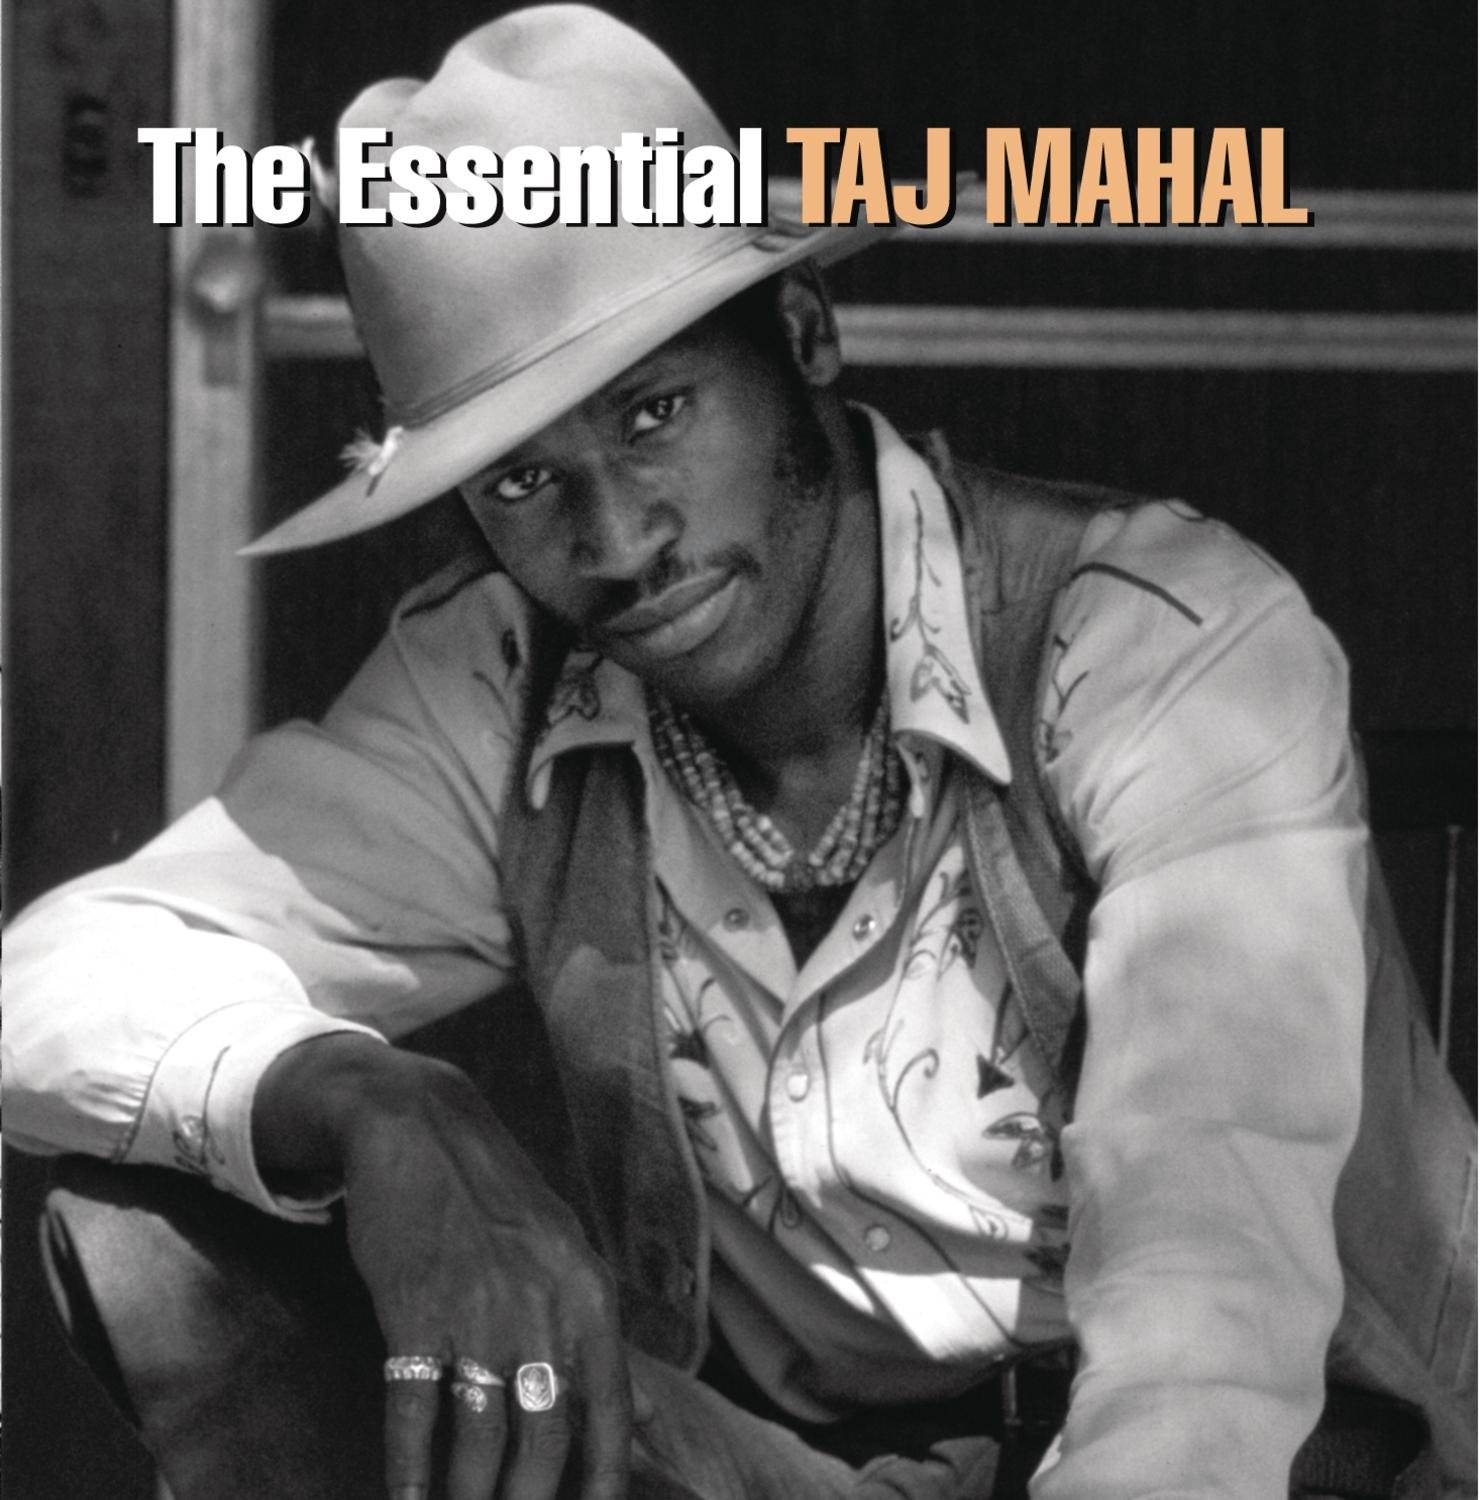 The Essential Taj Mahal by John Henry